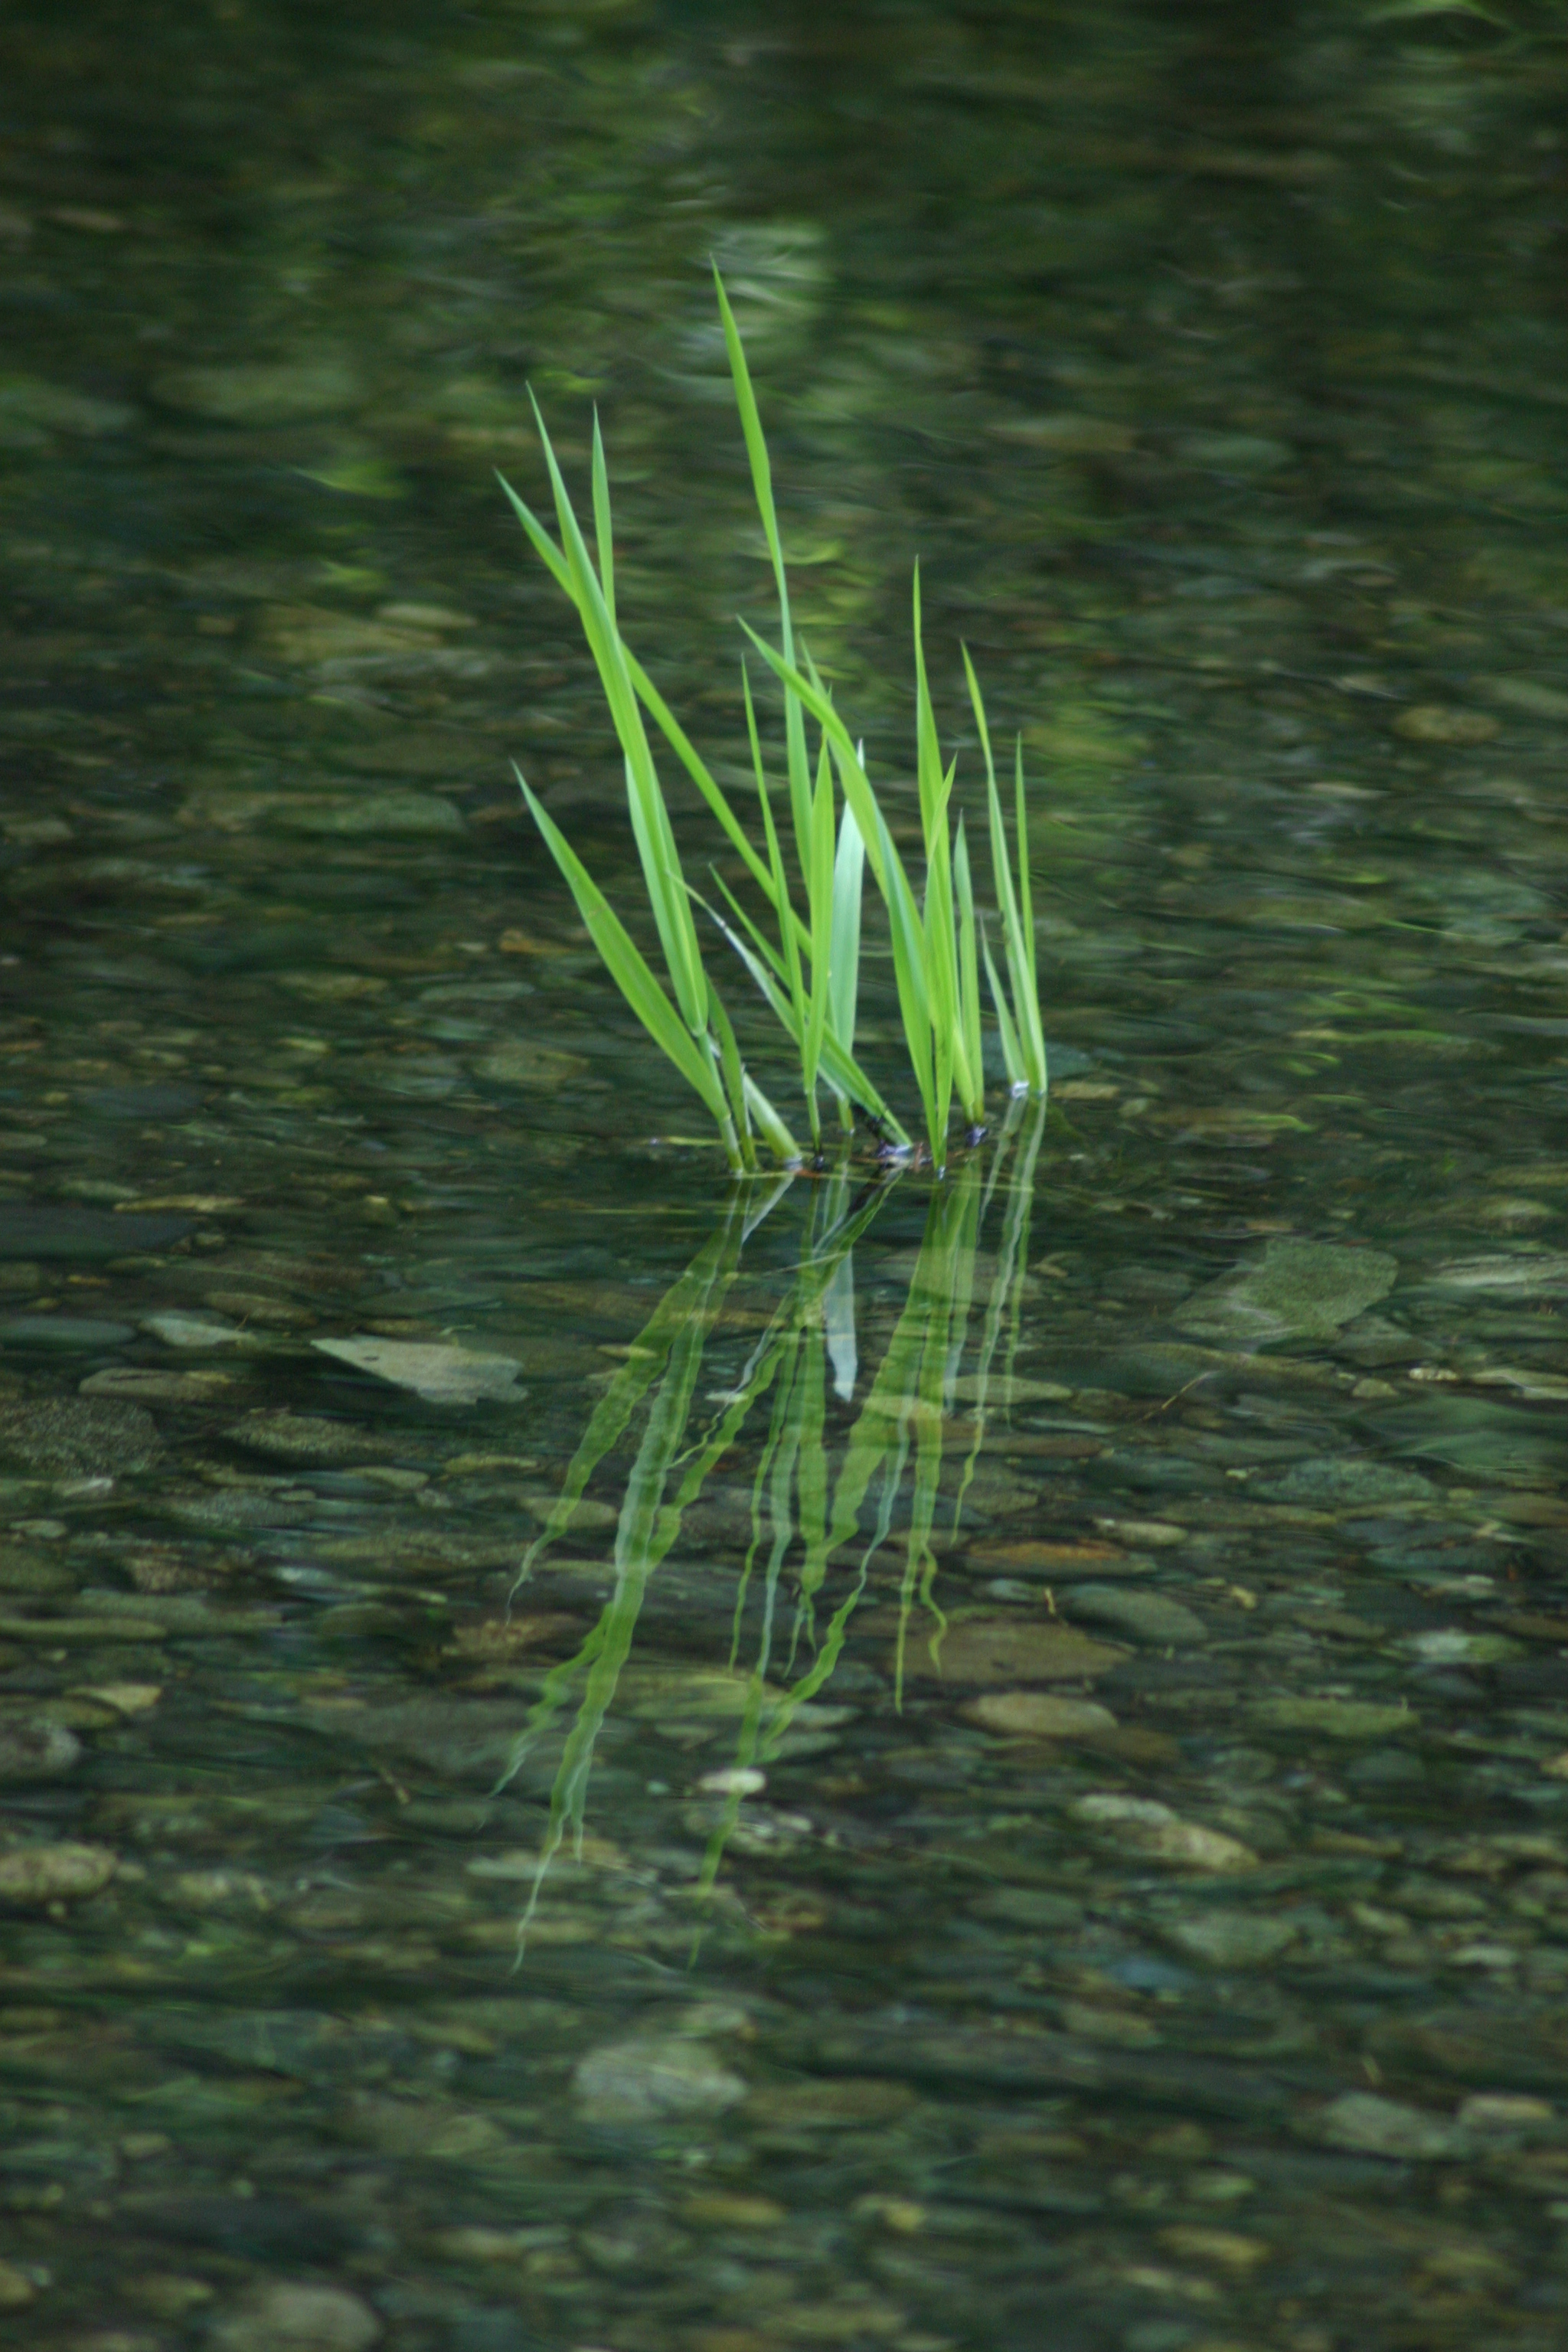 PLANT IN STREAM